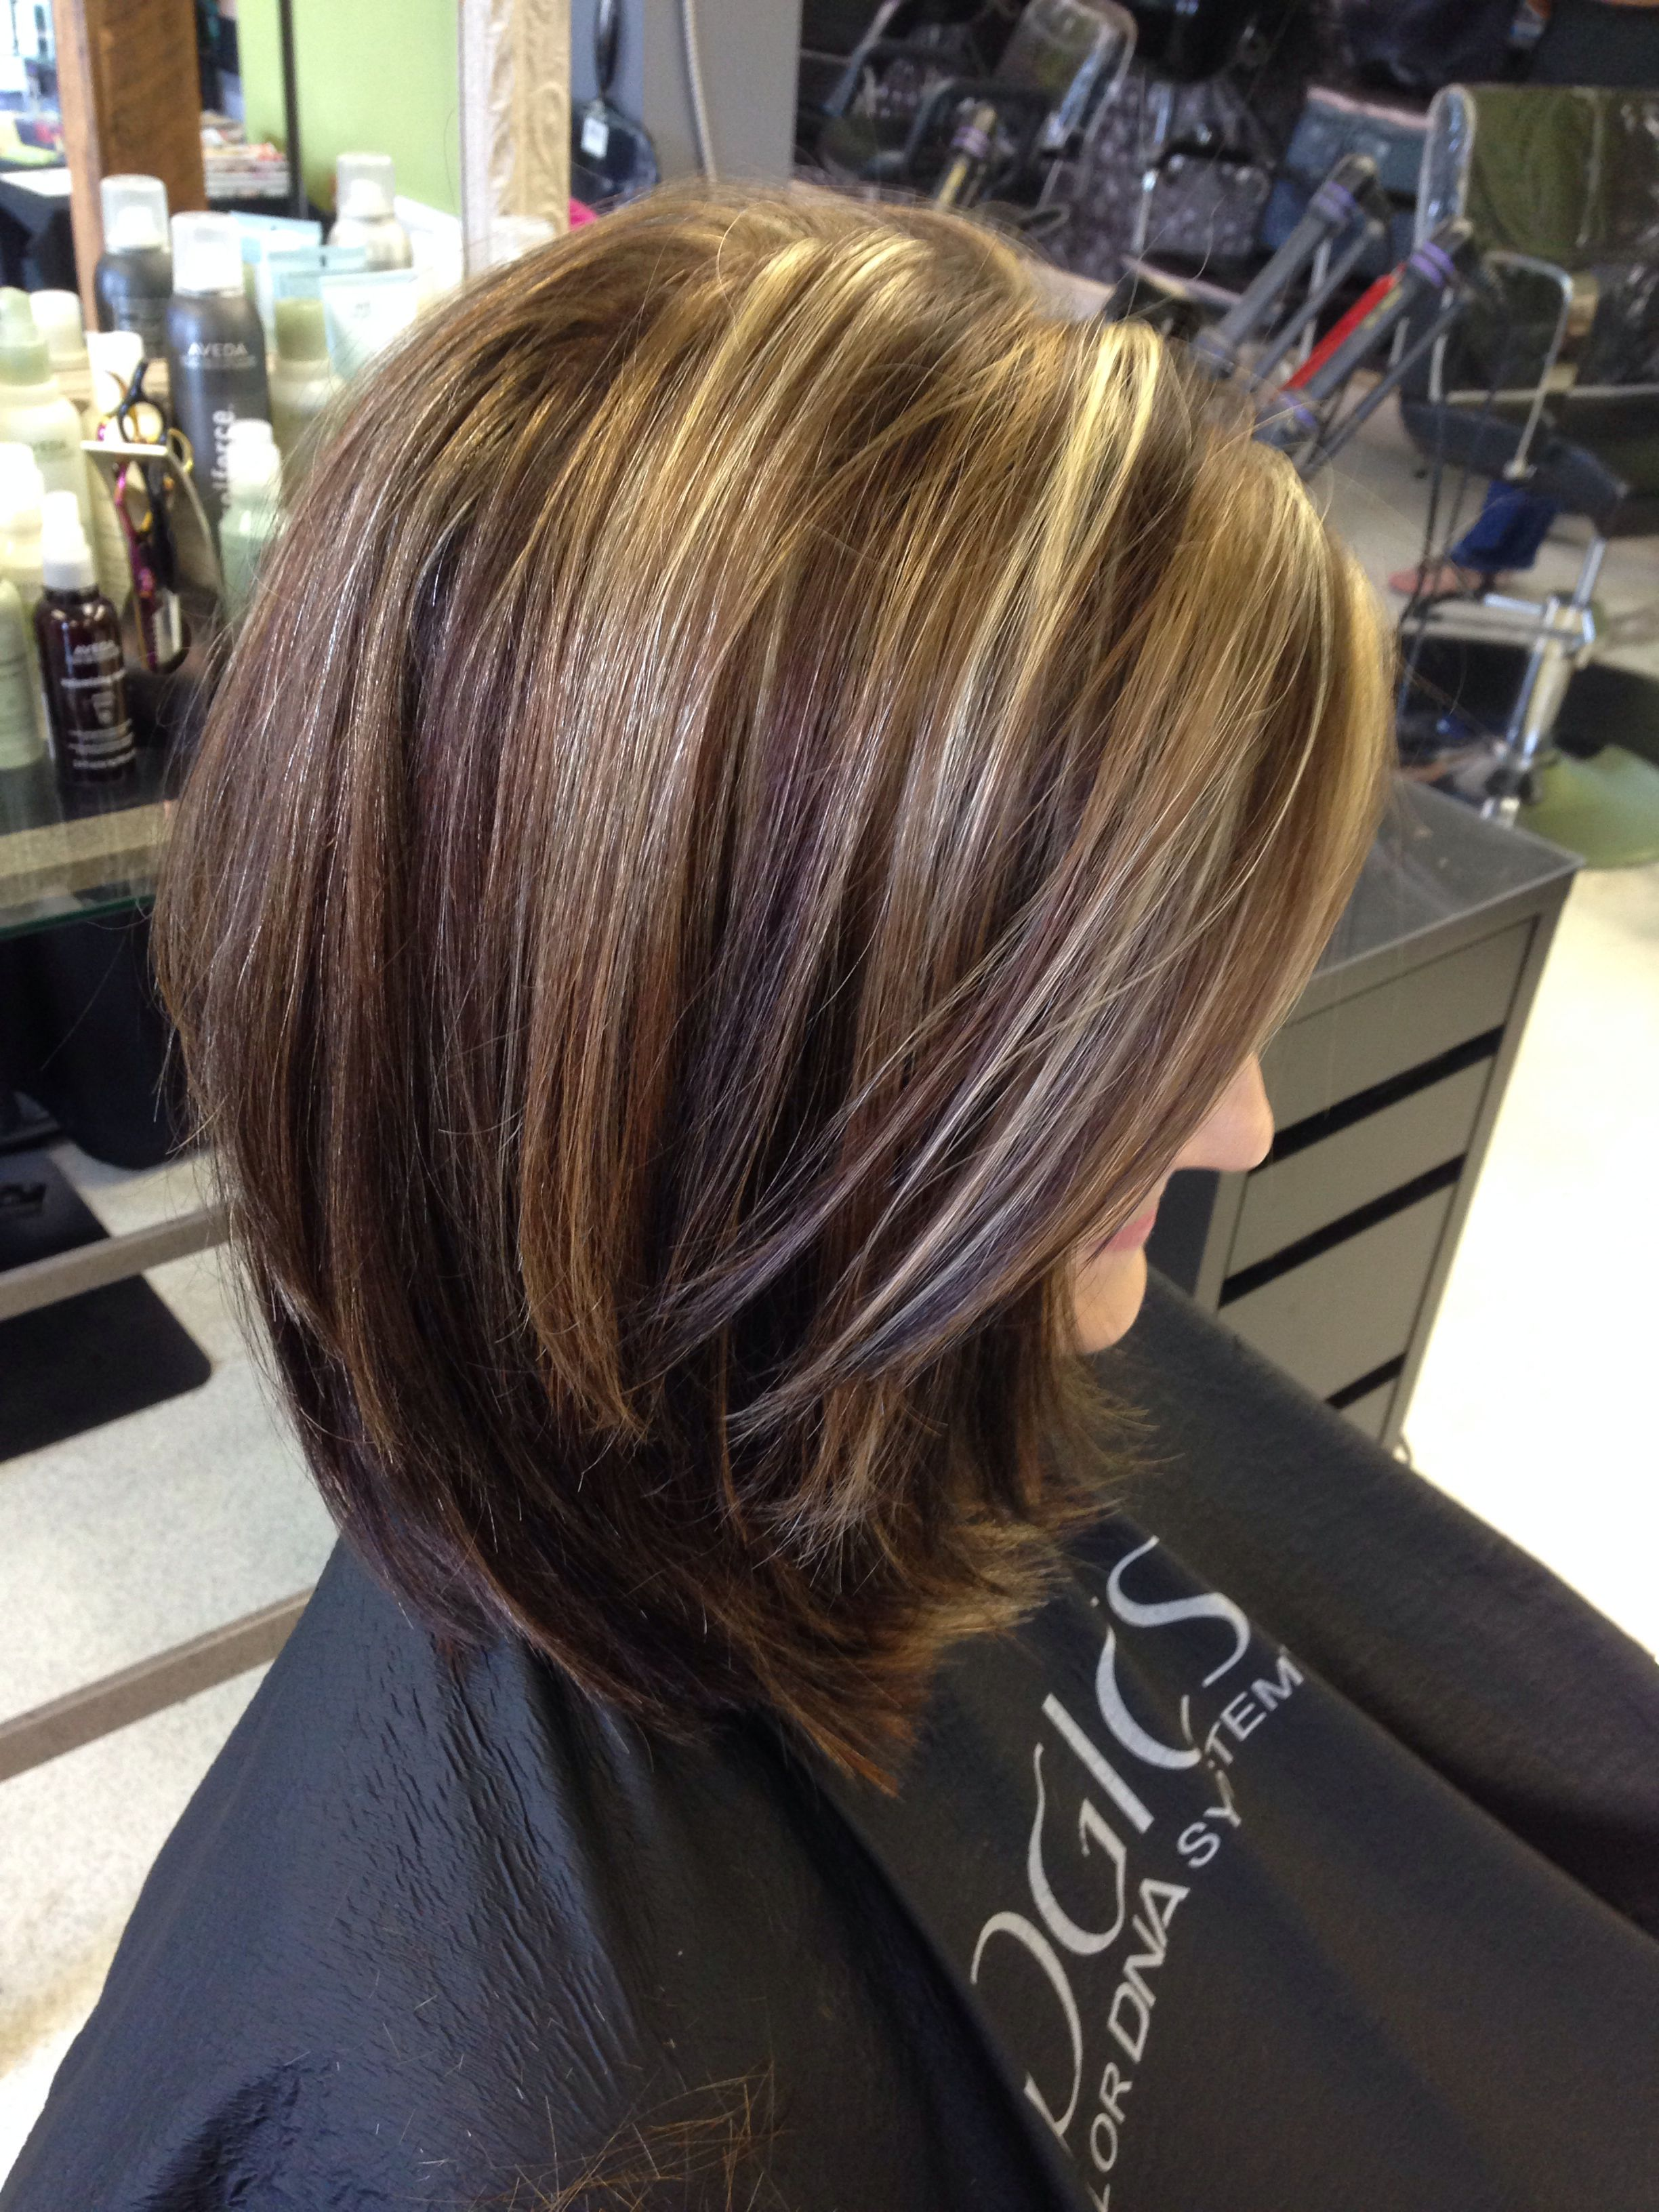 Short Hairstyles With Highlights And Lowlights Highlights And Lowlightstrisha Fringe Salon Lennon Mi  Short